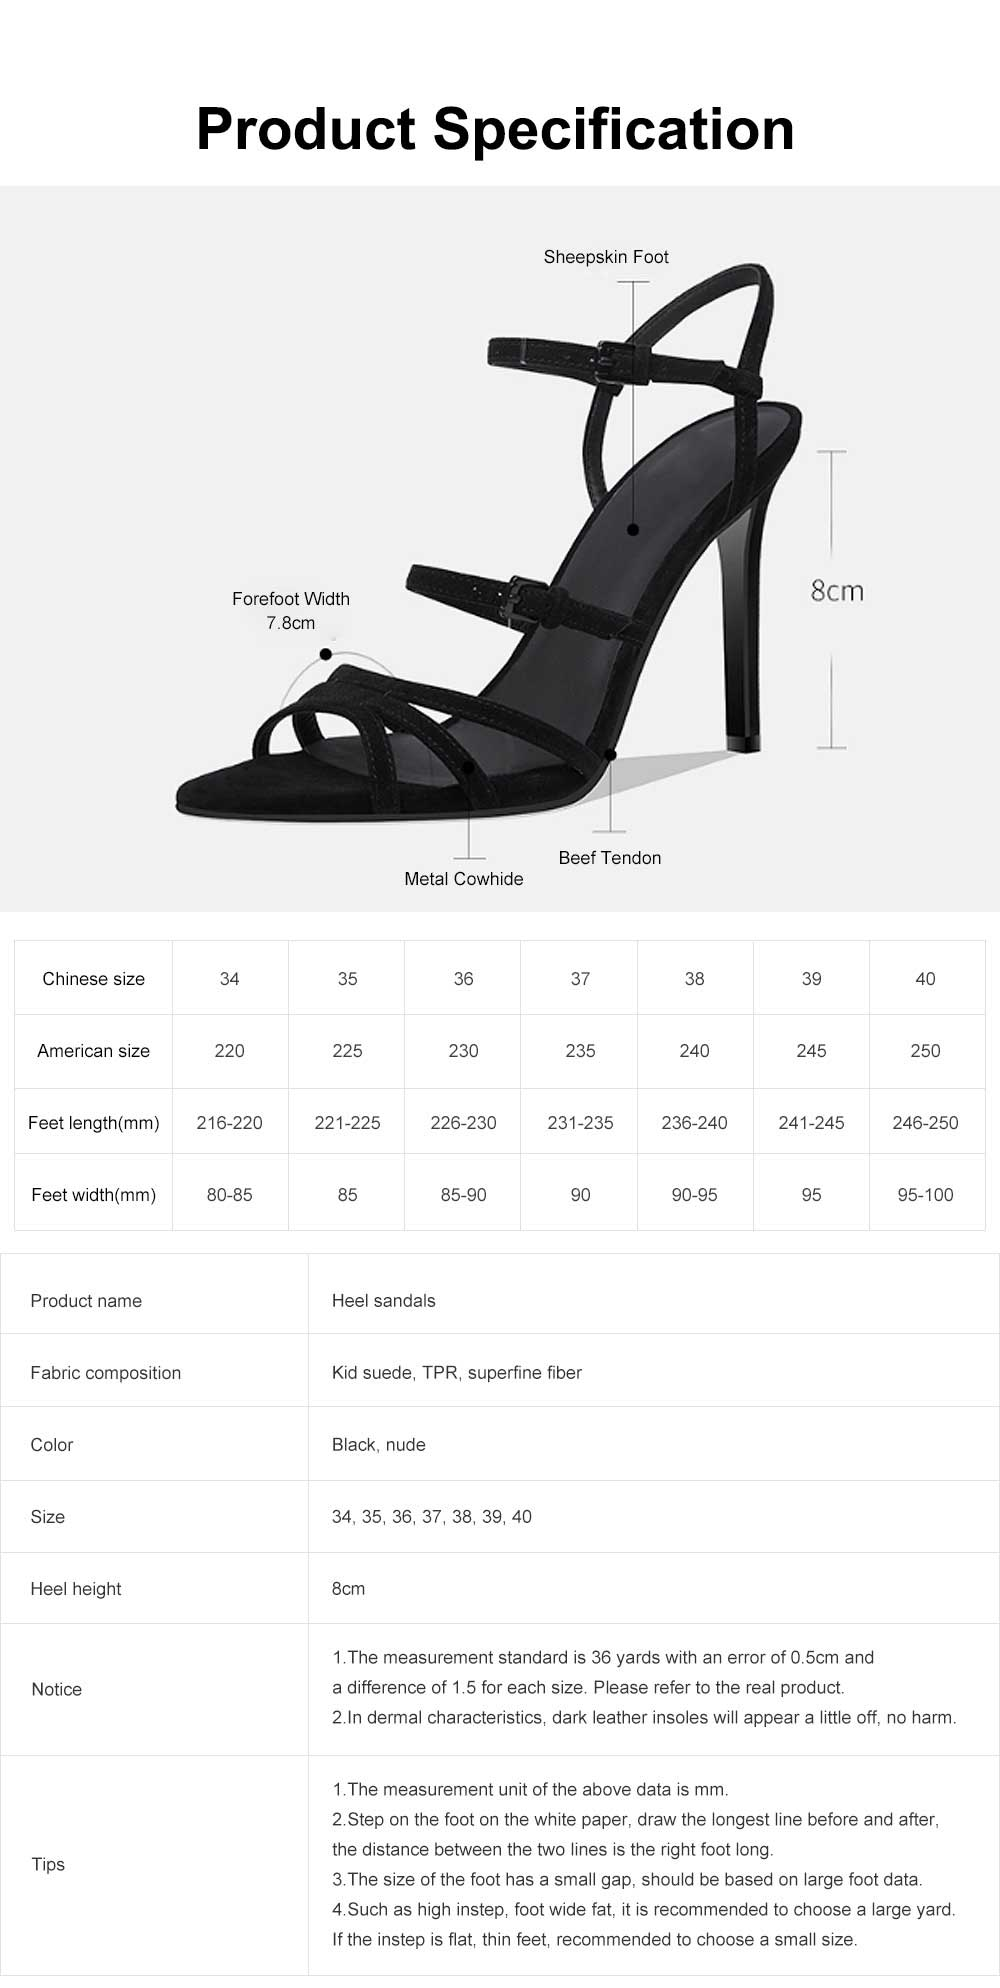 Heel Sandals for Women, Cross Lacing High-heeled Shoes with Fingerless TPR Sole, Kid Suede Heel-height 8cm Leather High Heels 6